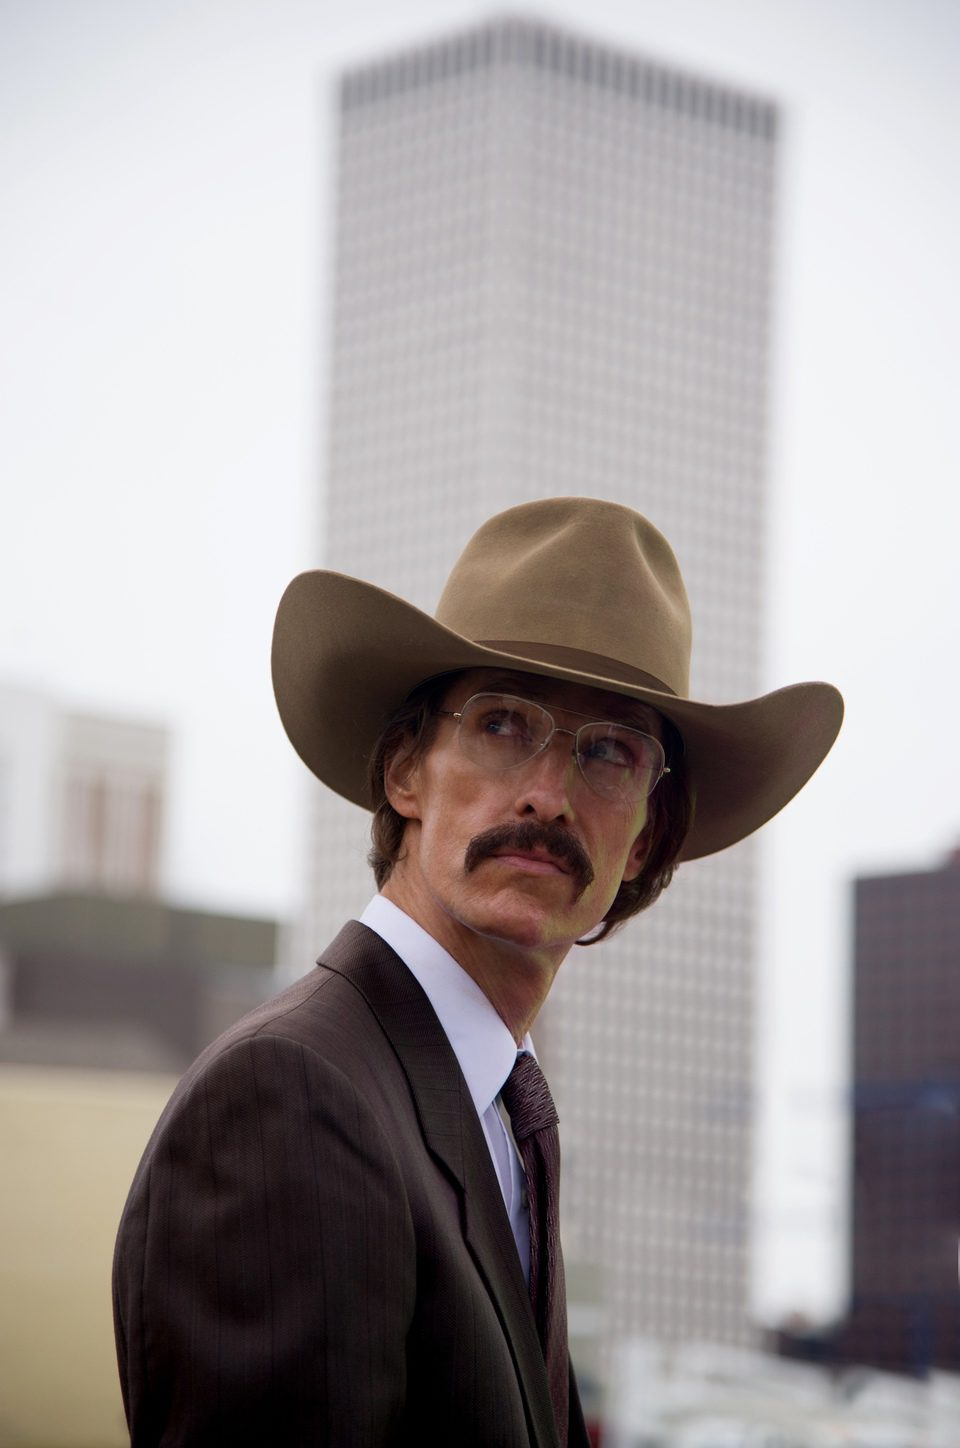 Dallas Buyers Club, fotograma 36 de 63